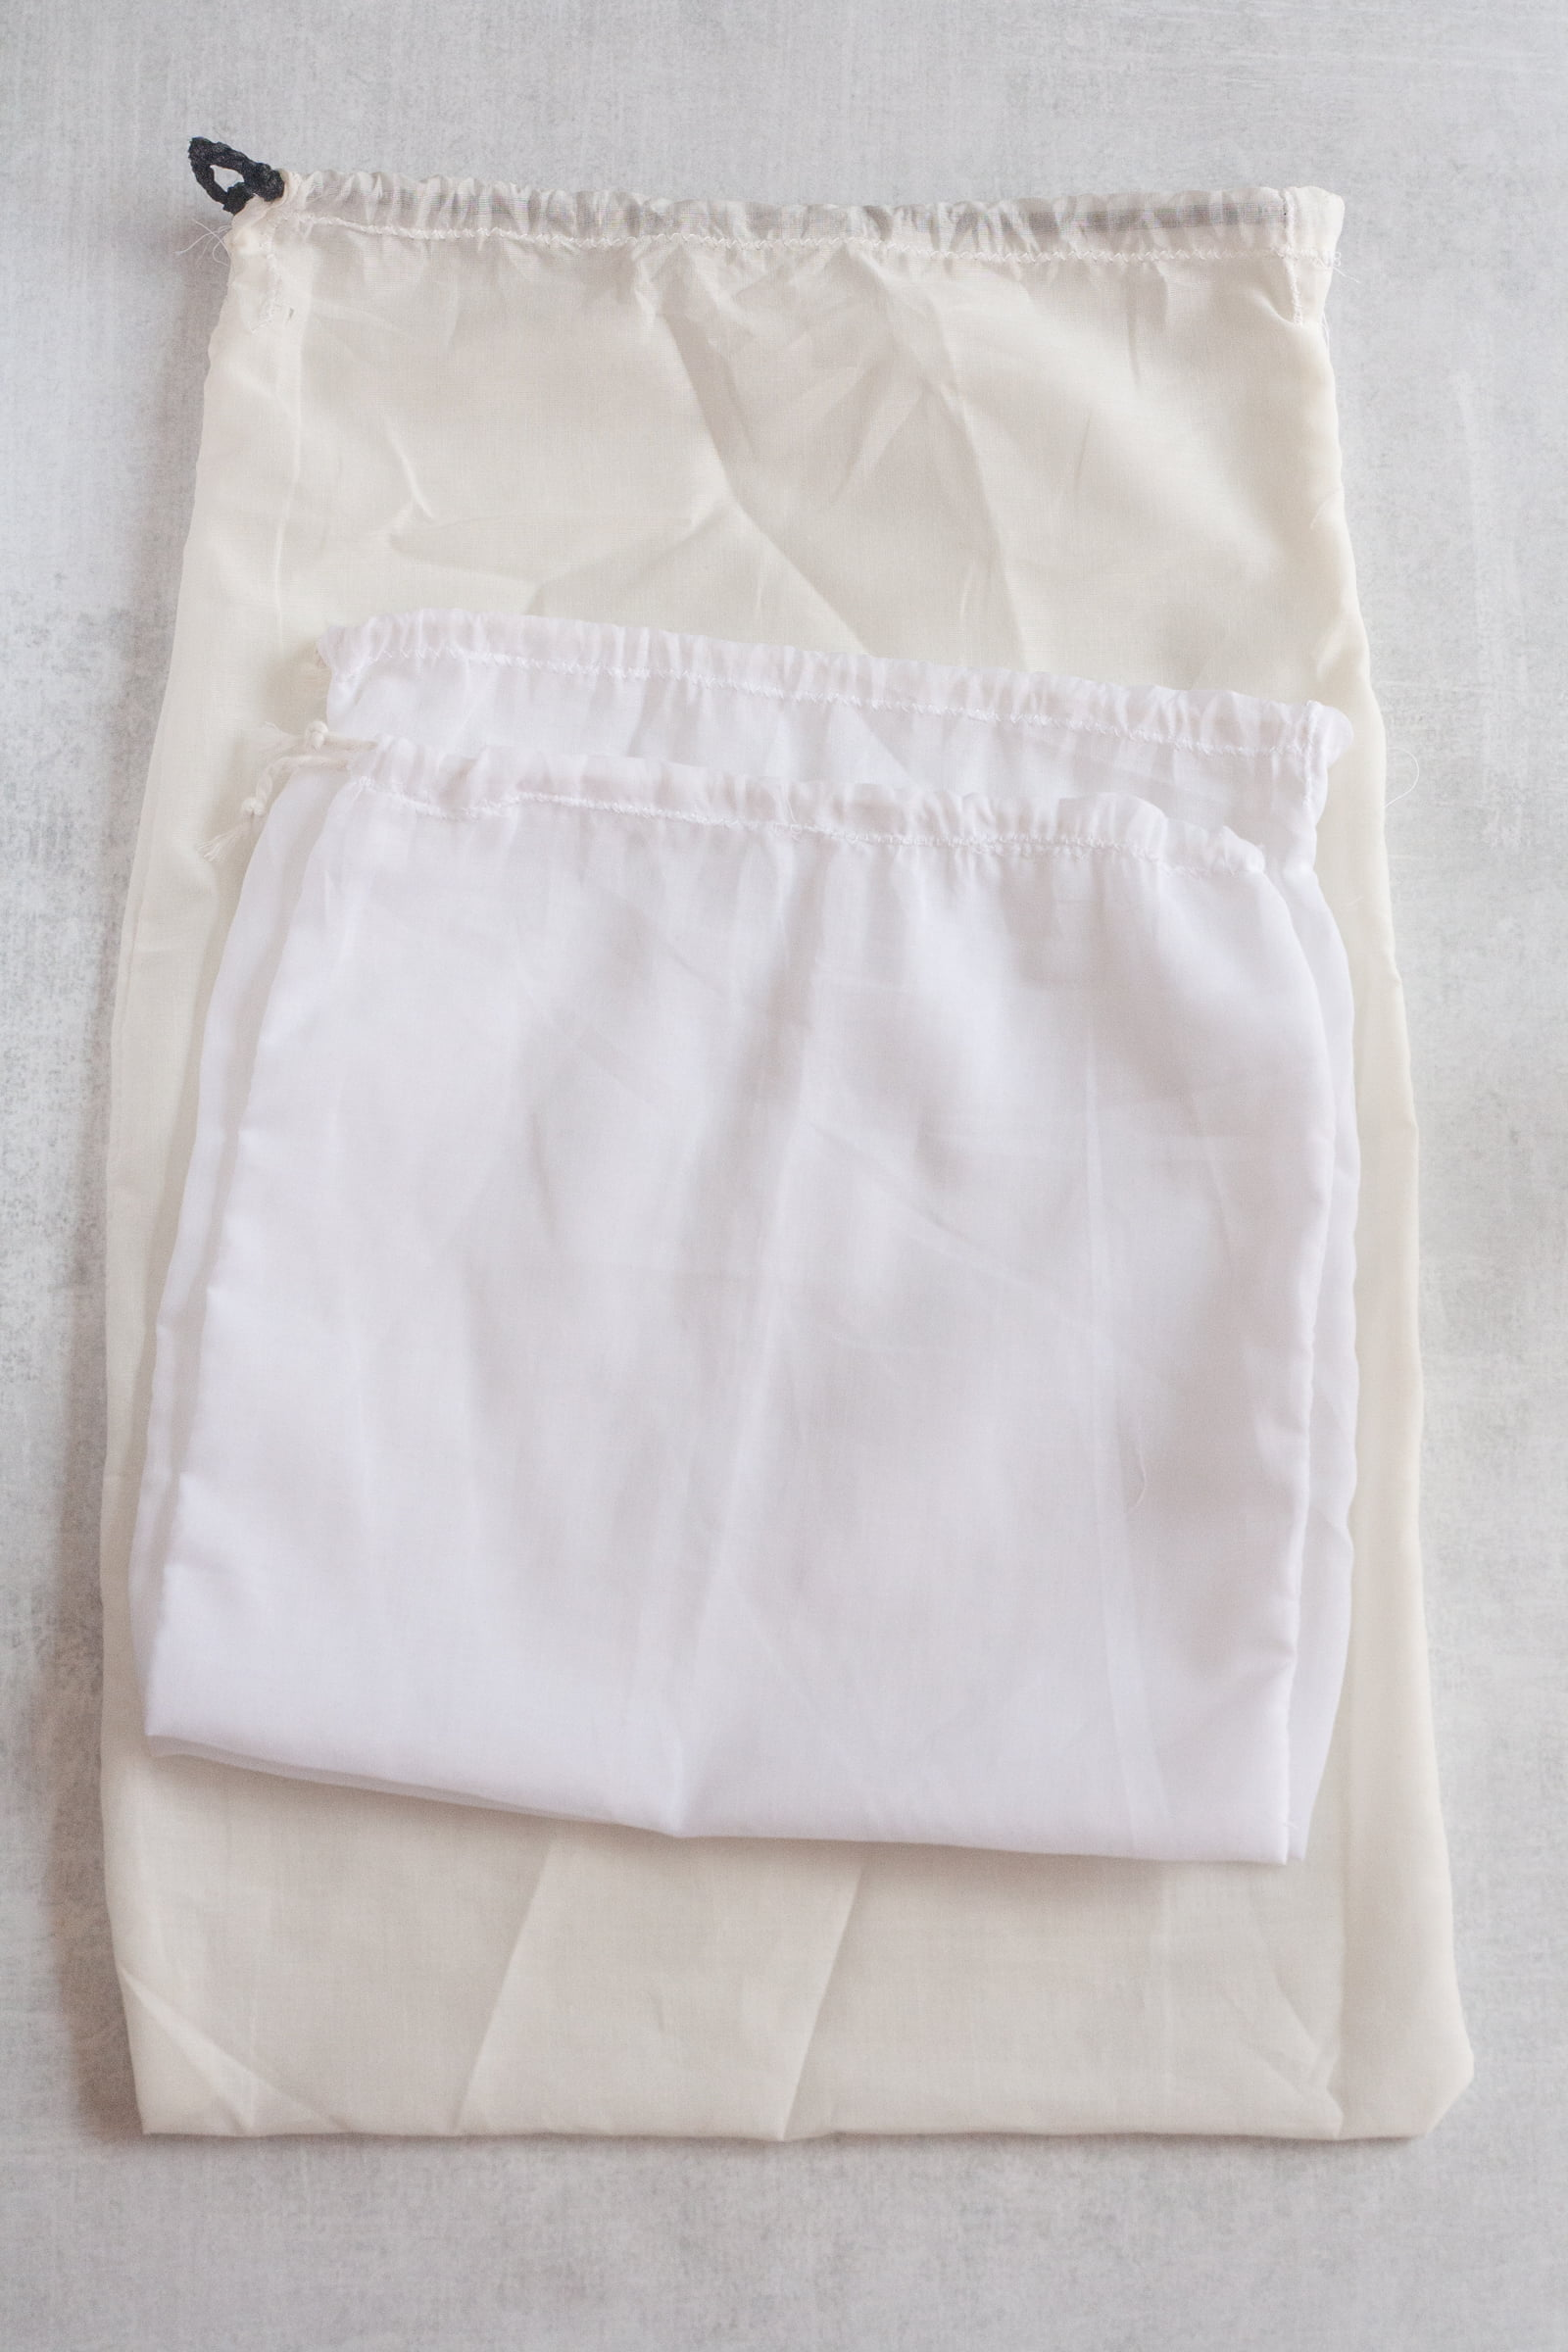 Three cotton voile drawstring bags stacked on top of each other